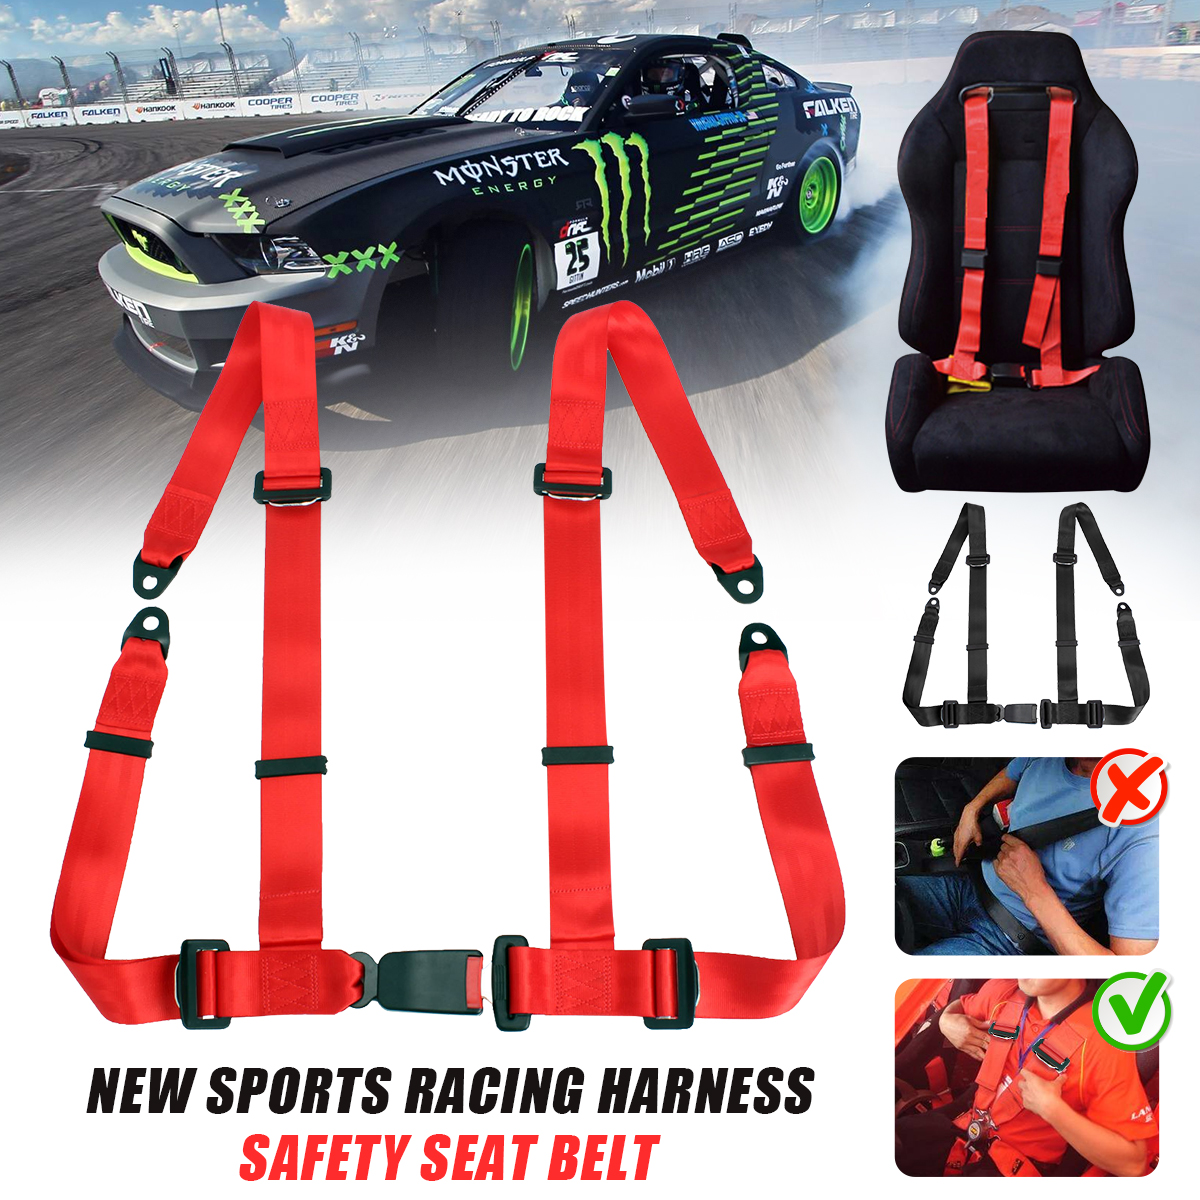 1x New Sports Racing Harness Seat Belt 3 4 Point Fixing Mounting Quick Release Nylon Car Safety Racing Seat Belt Black Red